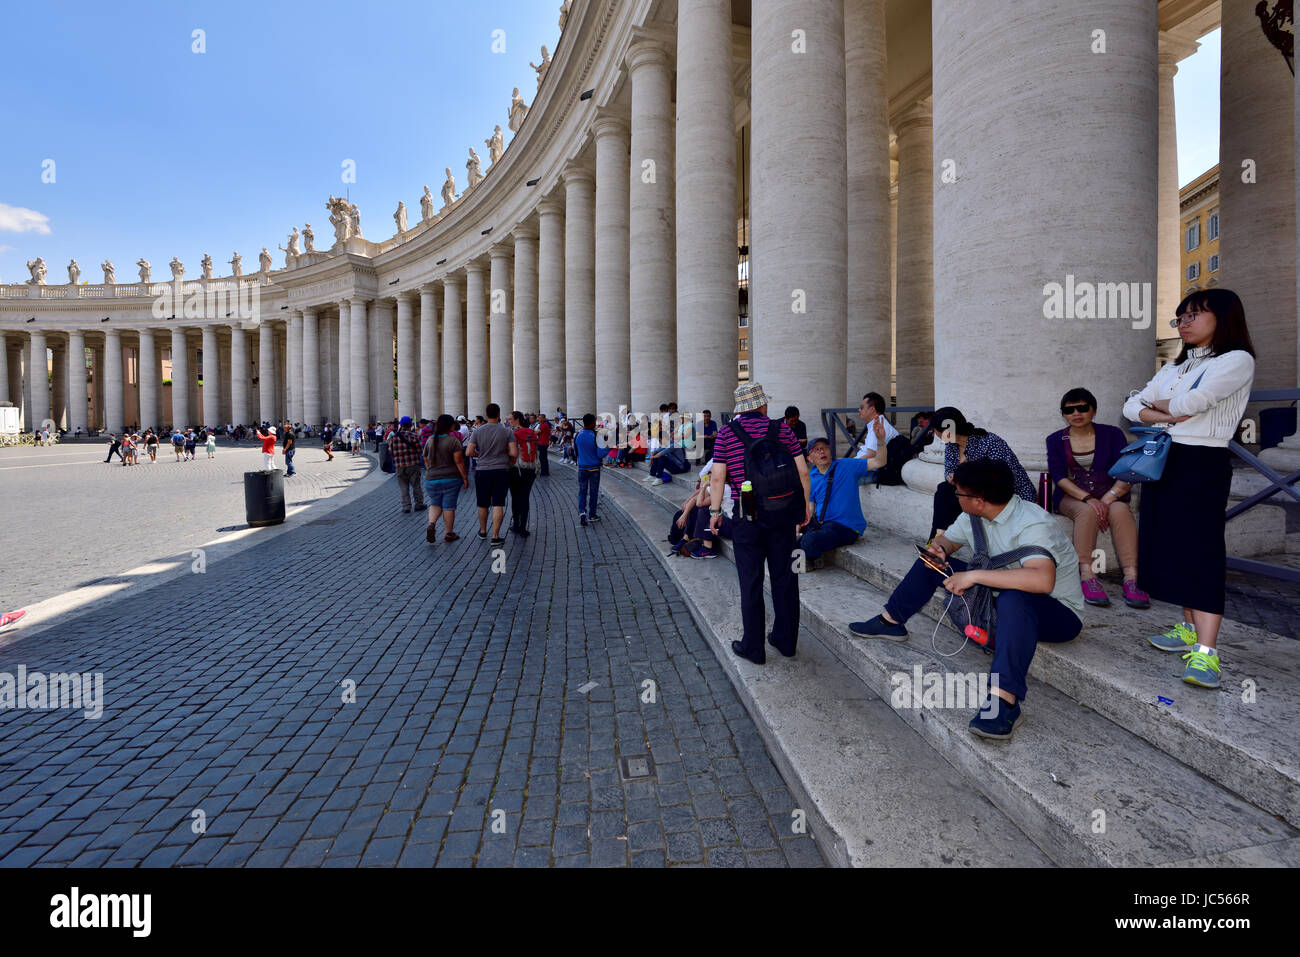 Saint Peter's Square, Vatican City, Rome. People staying cool in shade - Stock Image